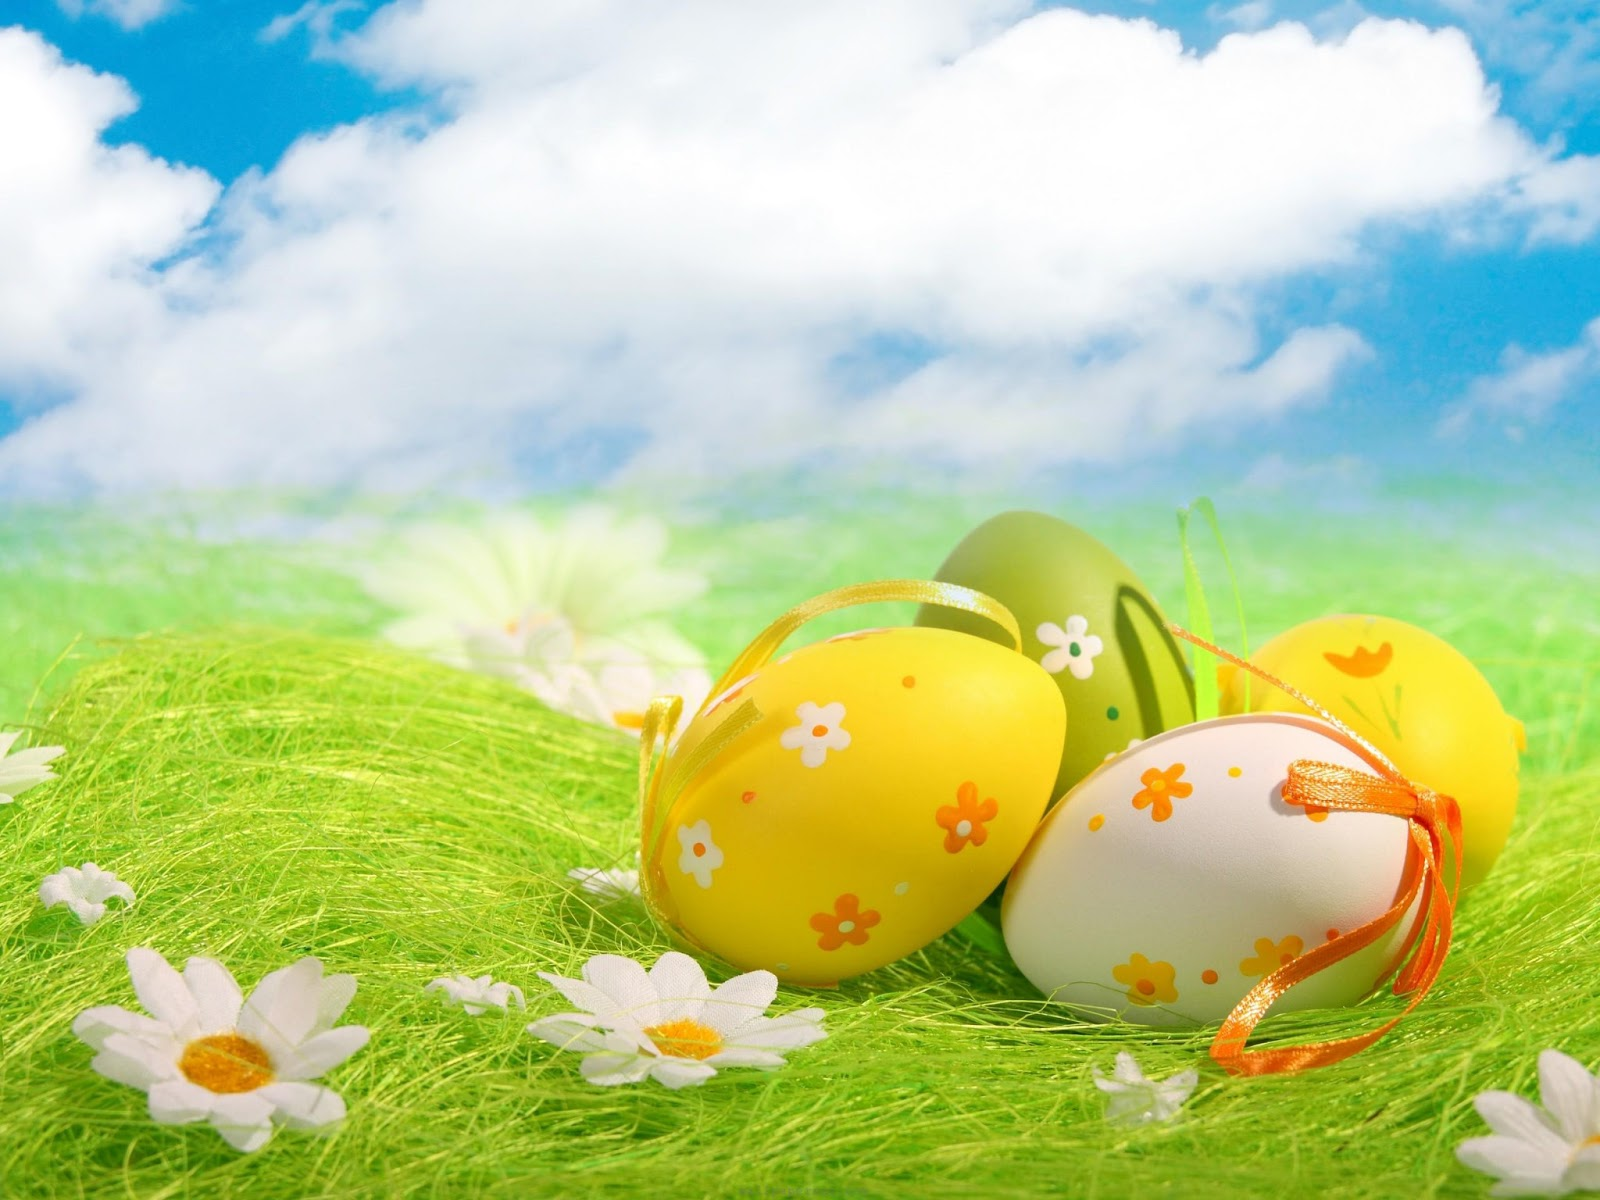 Yellow Easter egg pictures 2021